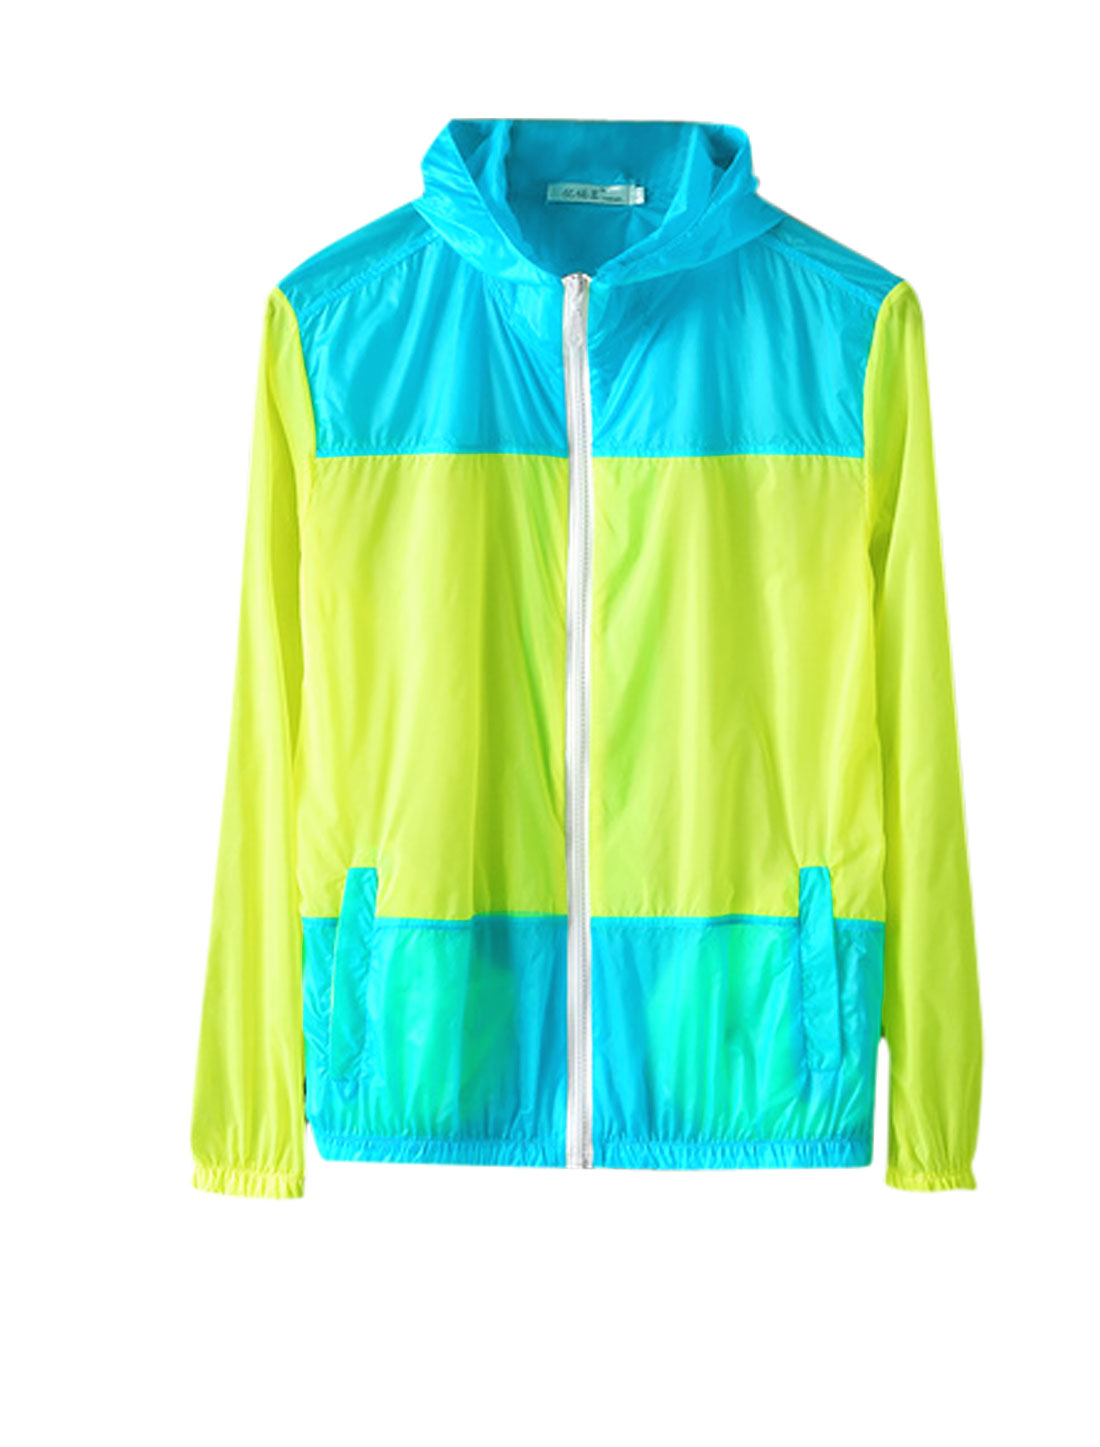 Men Zip Front Colorblock Semi Sheer Thin Basic Hooded Jacket Blue Lime M